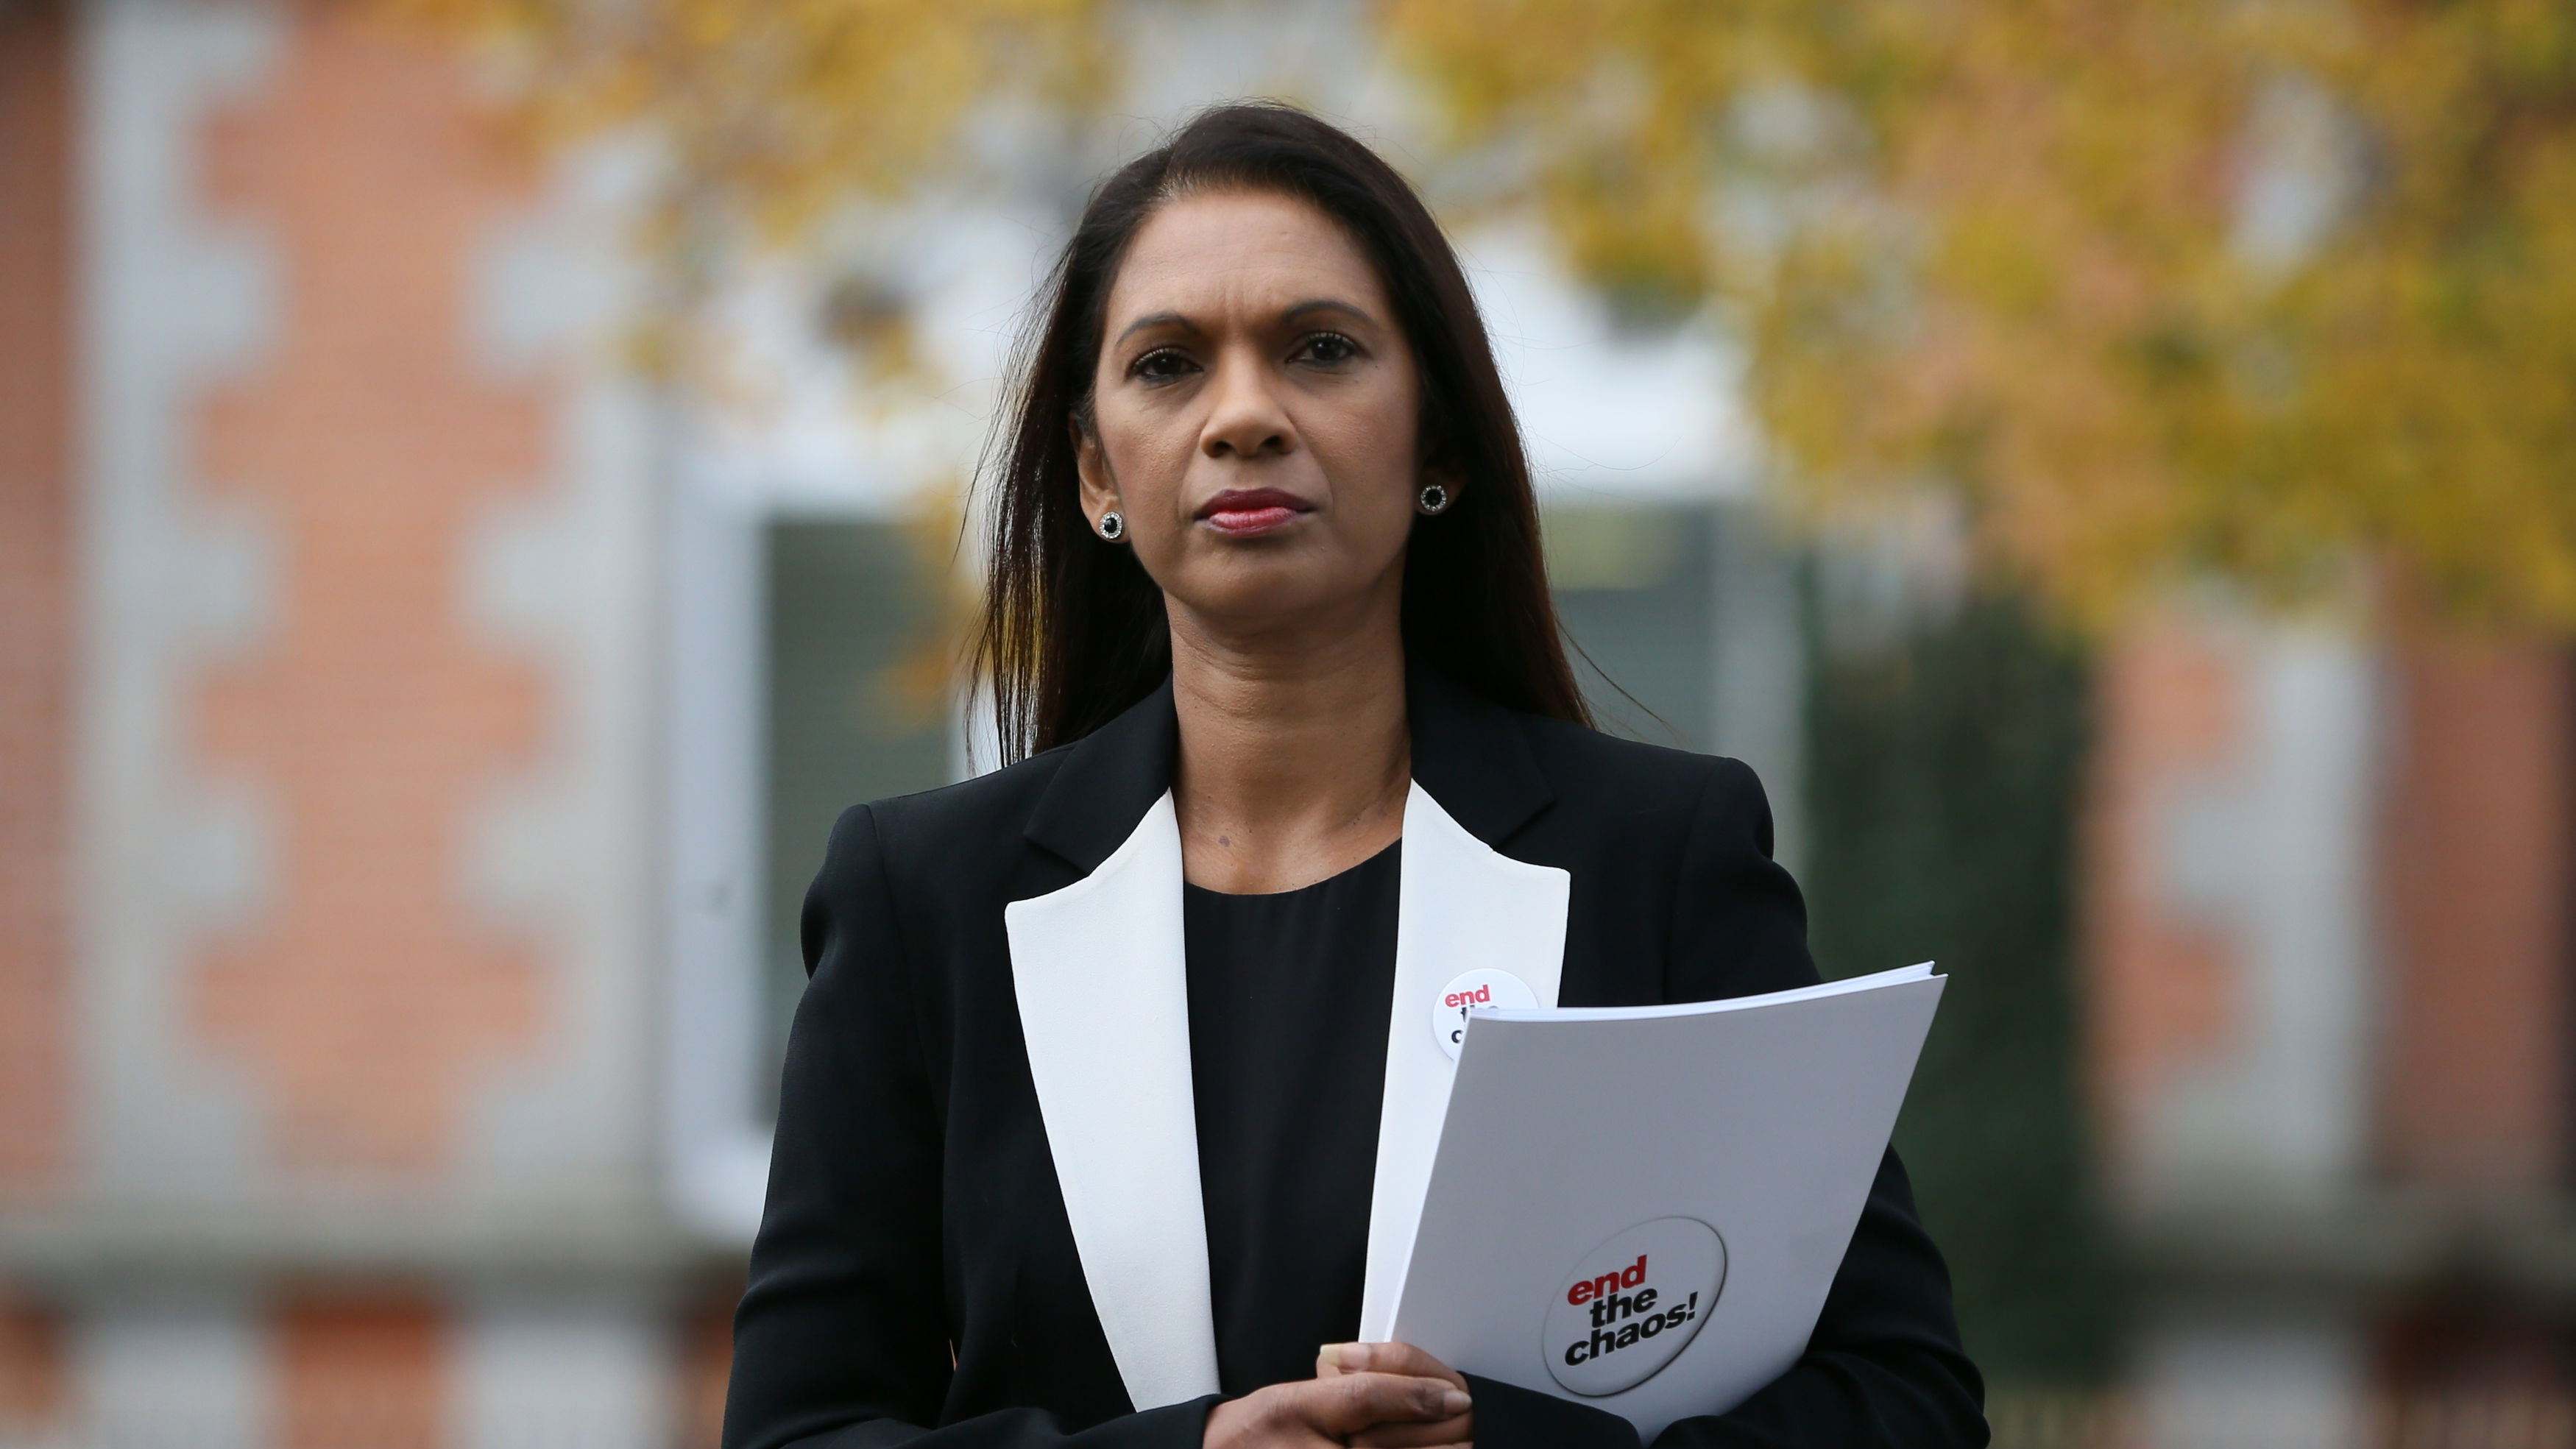 campaigner gina miller prepares for battle as a woman in business